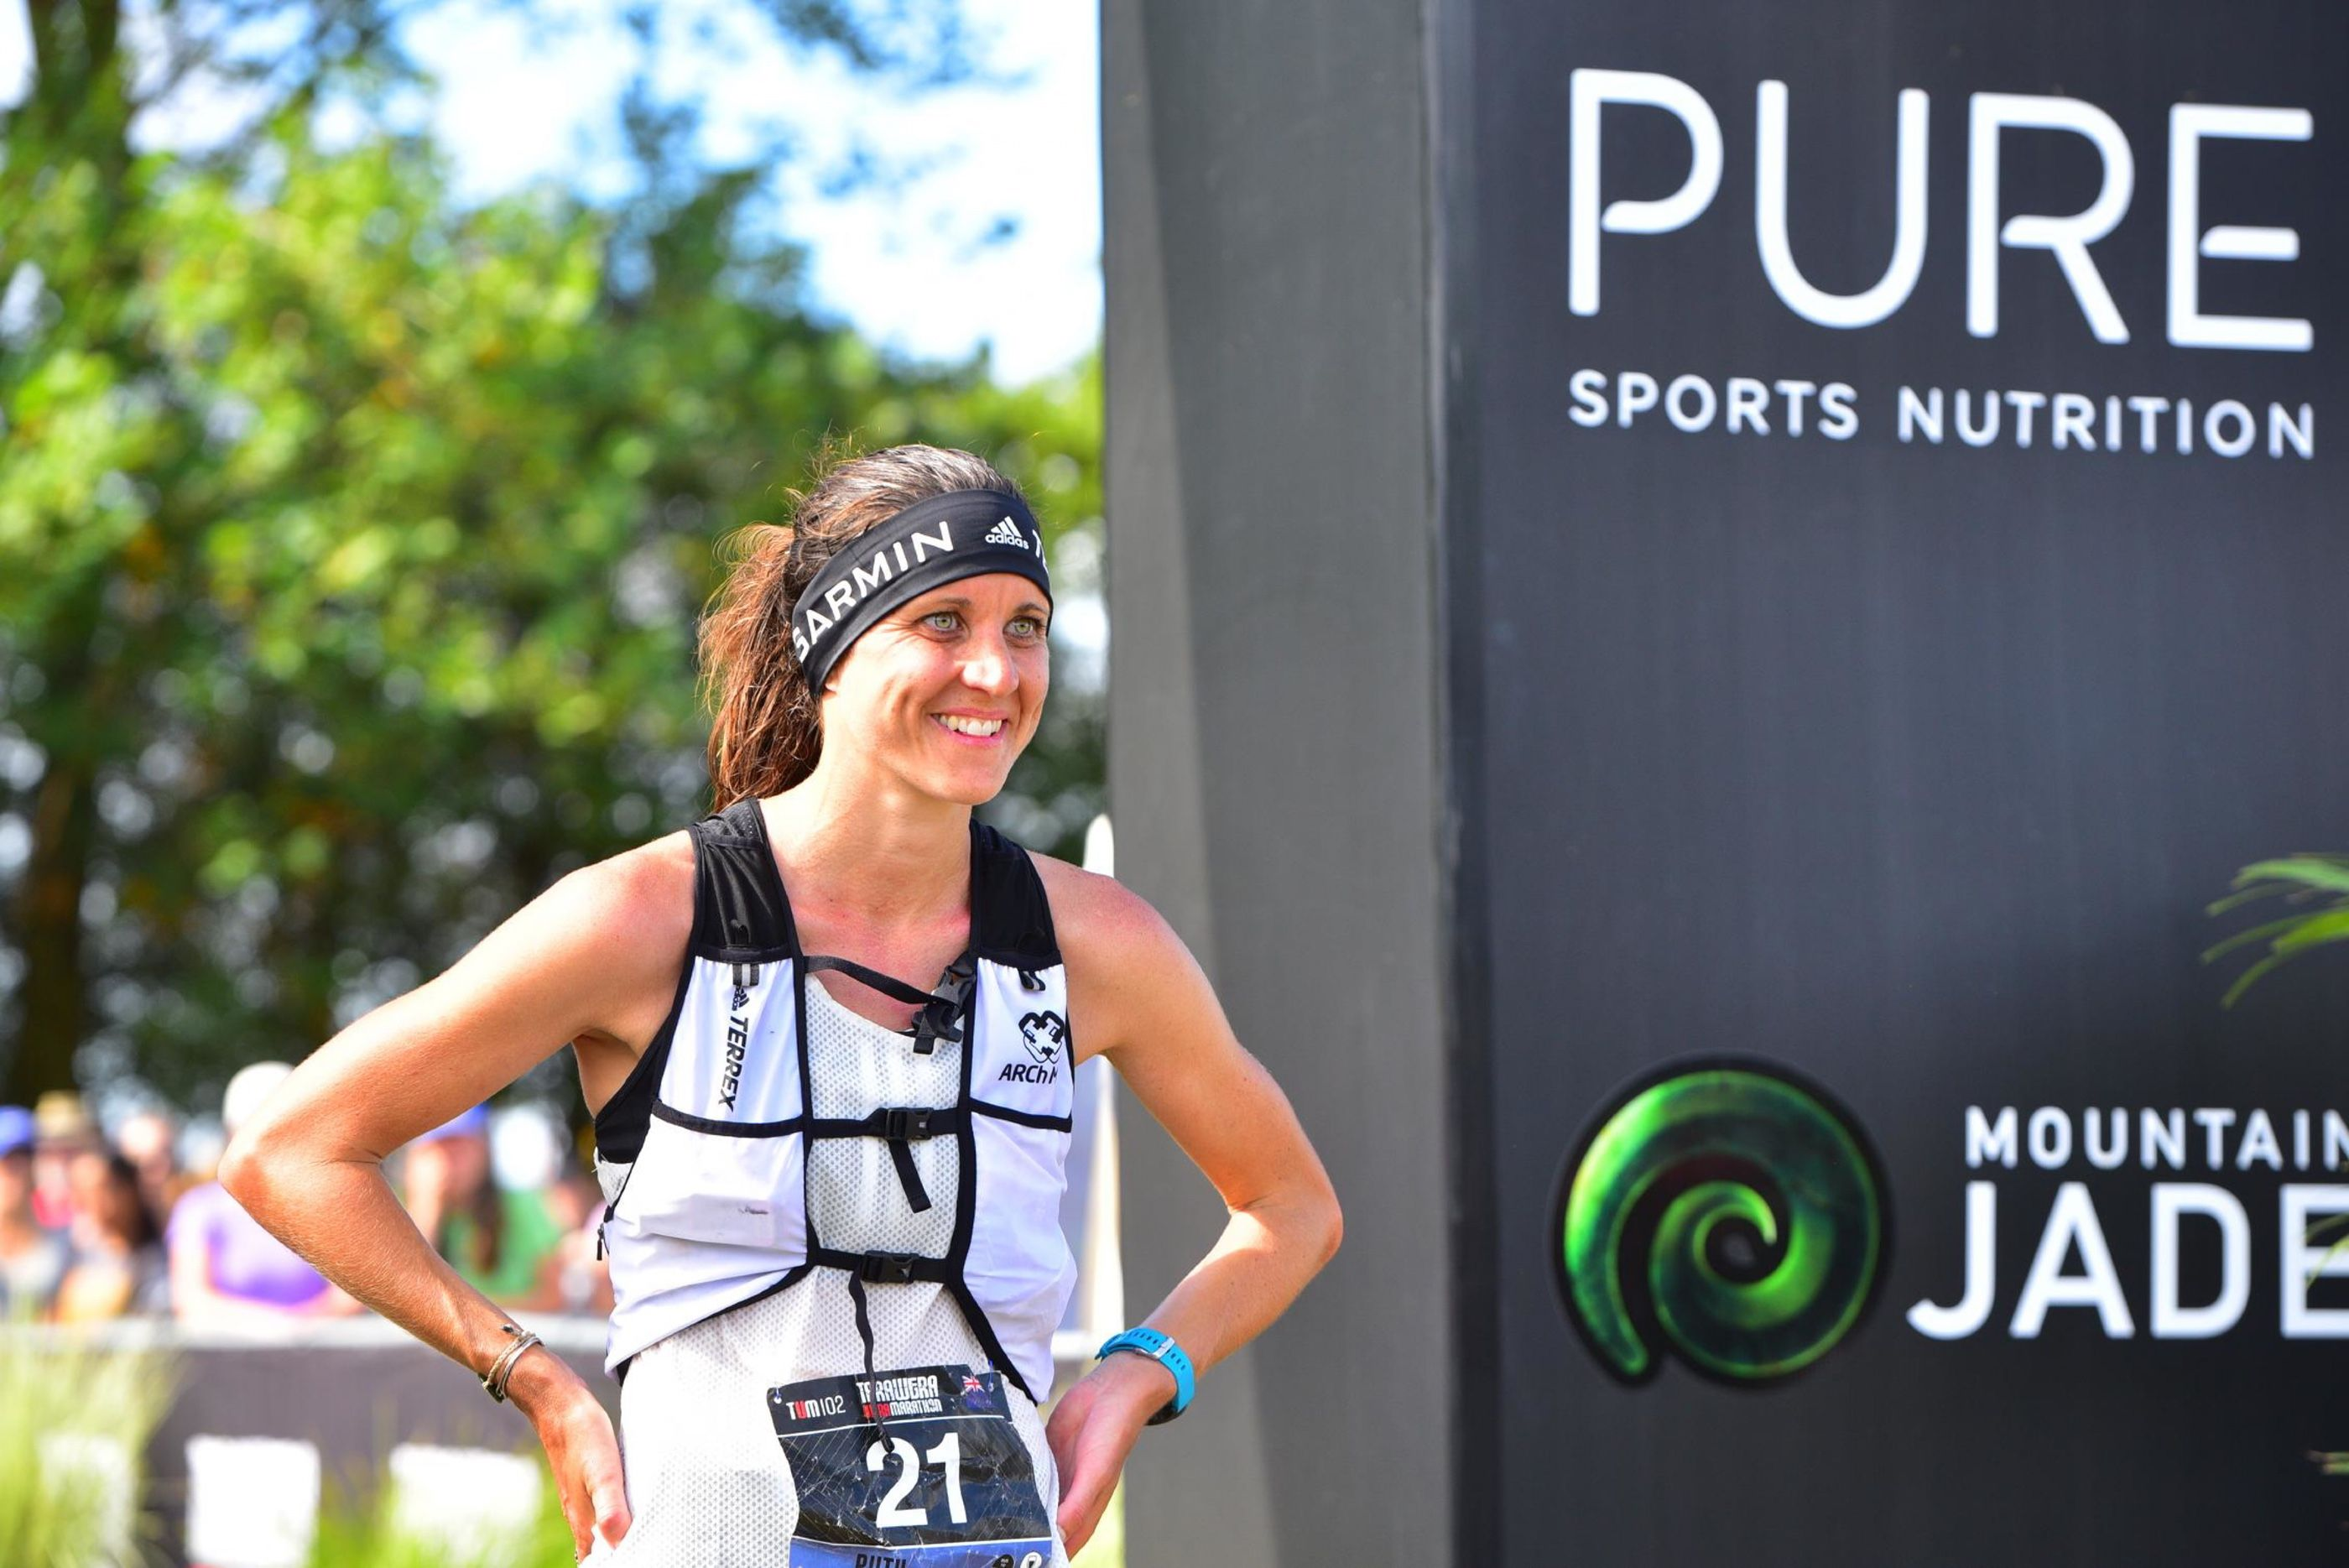 The 2019 World Trail Running Championships silver medallist Ruth Croft is among the very best in her craft. Here the 32-year-old New Zealander offers her top tips for the trail running beginner.